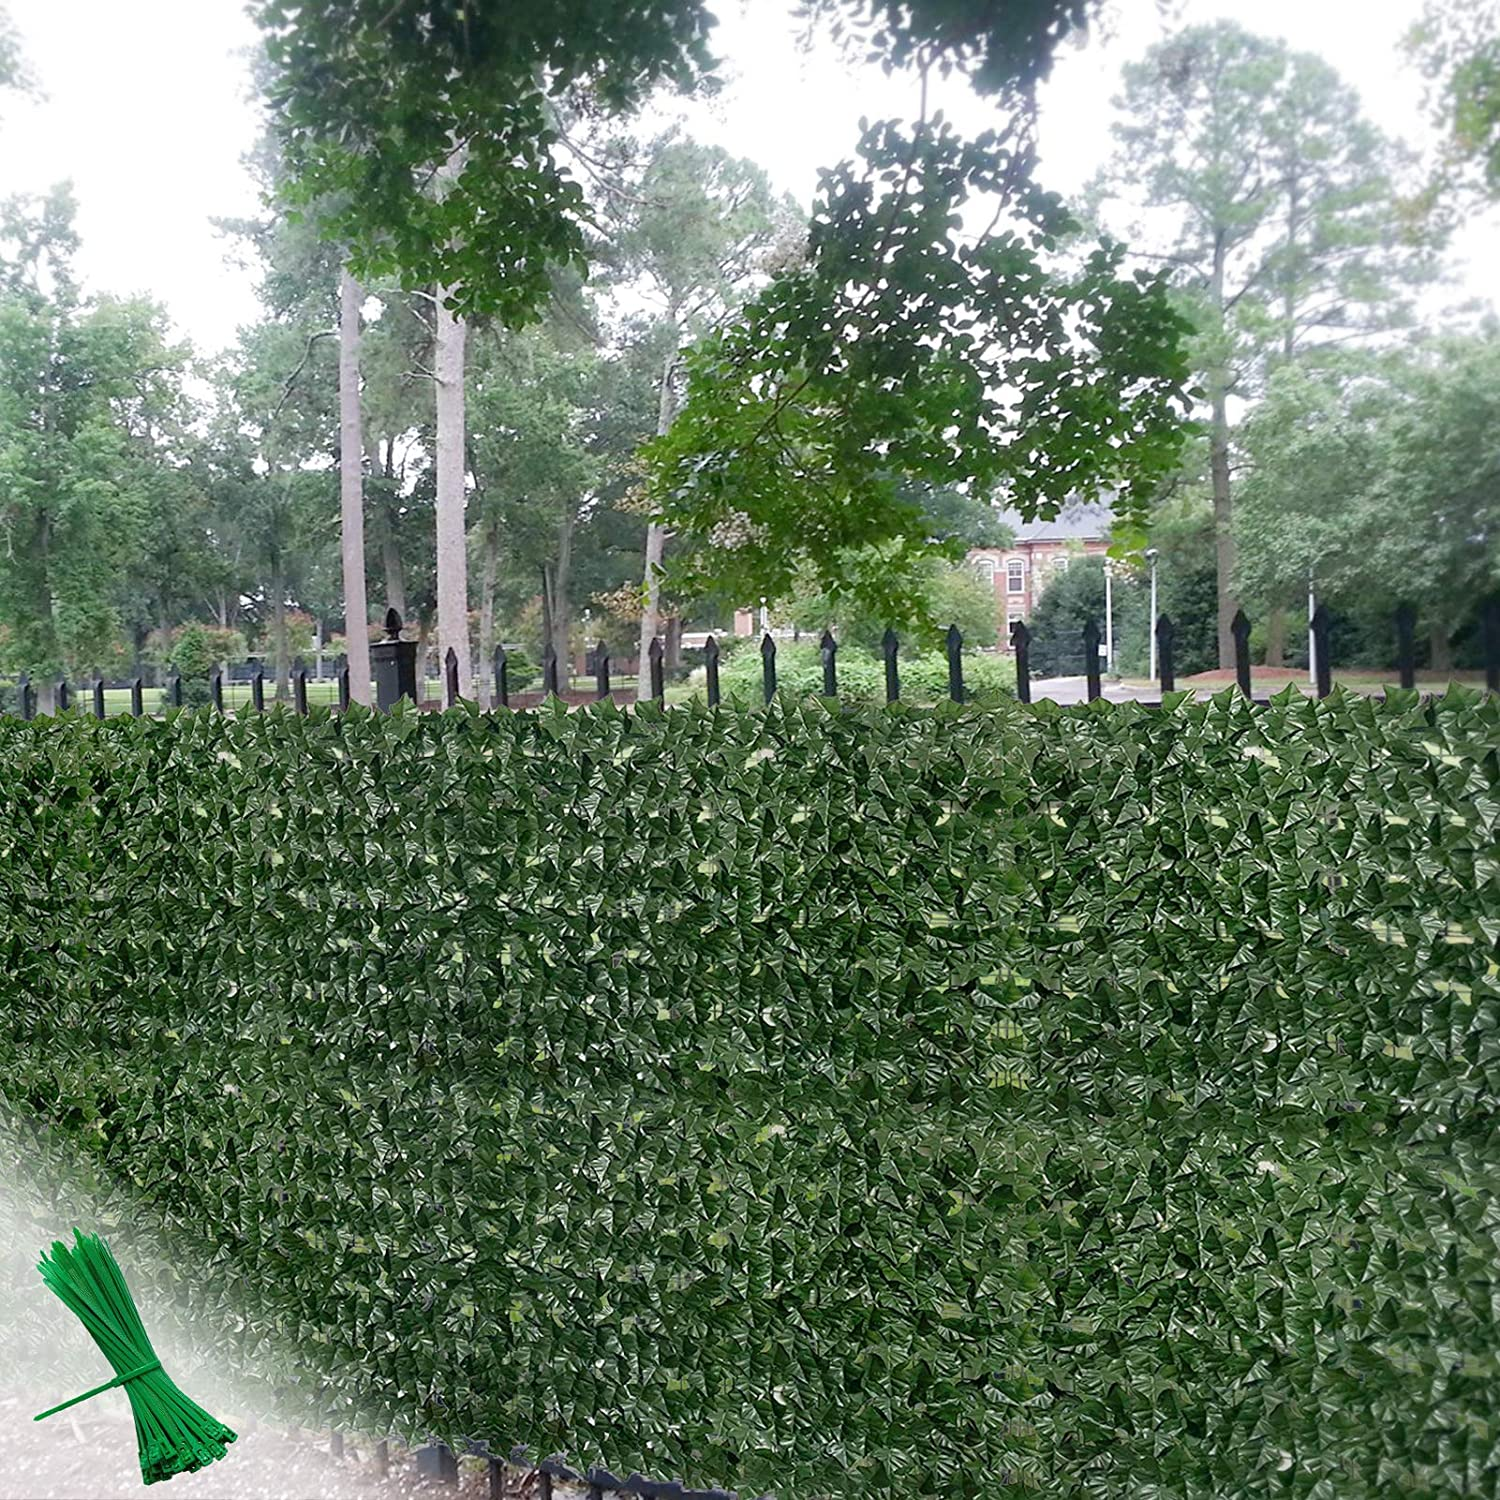 Gilaree 39x 118 in Aritificial Ivy Fence Wall Décor Faux Ivy Privacy Fence Screen Plant Leaves and Vine Decoration for Home, Yard, Garden